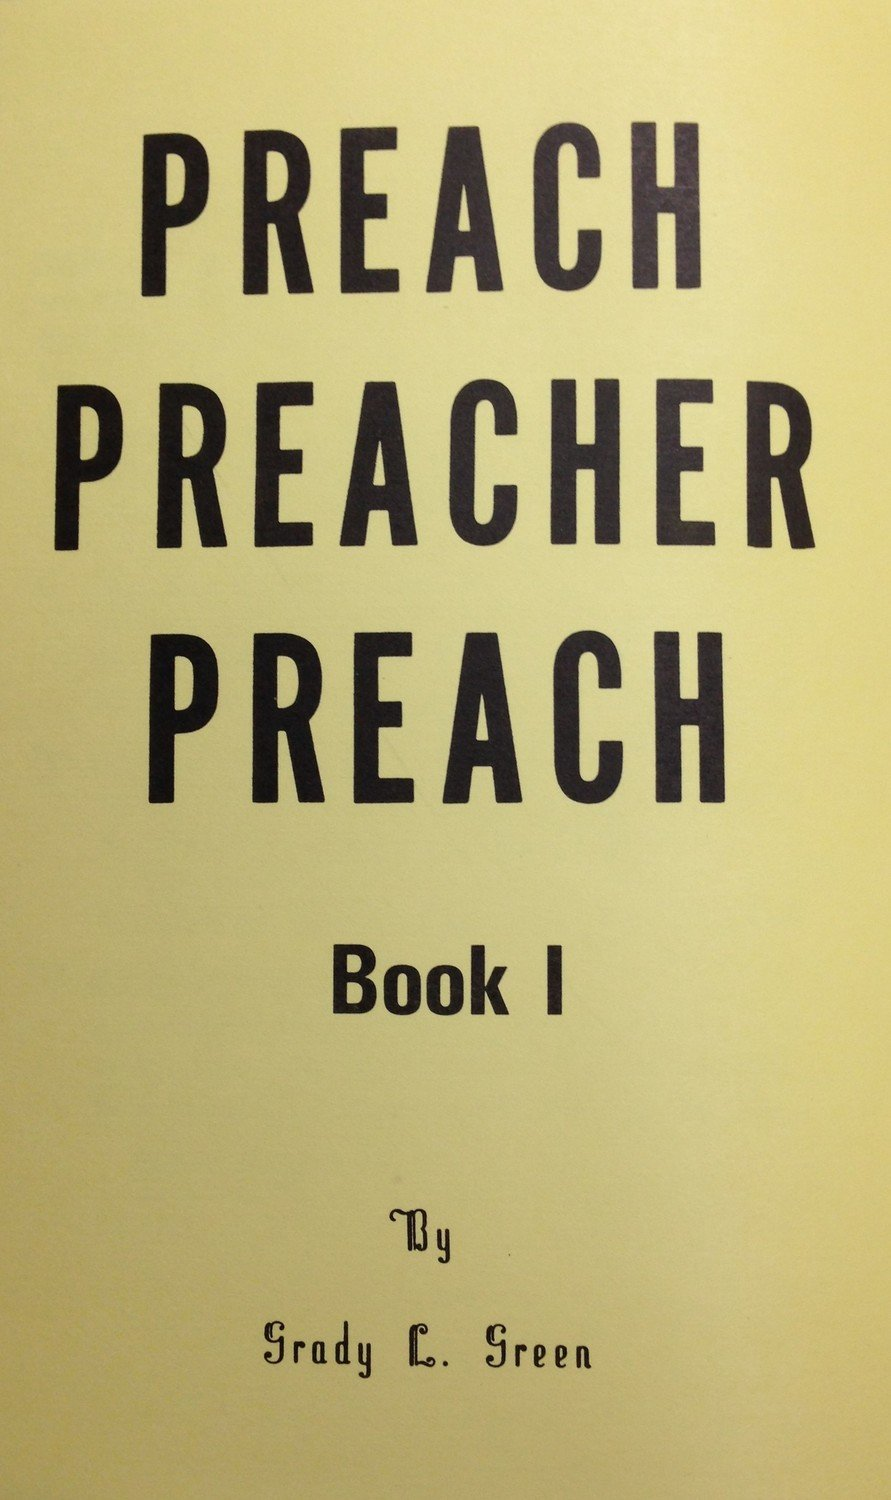 Preach Preacher Preach by Grady Green